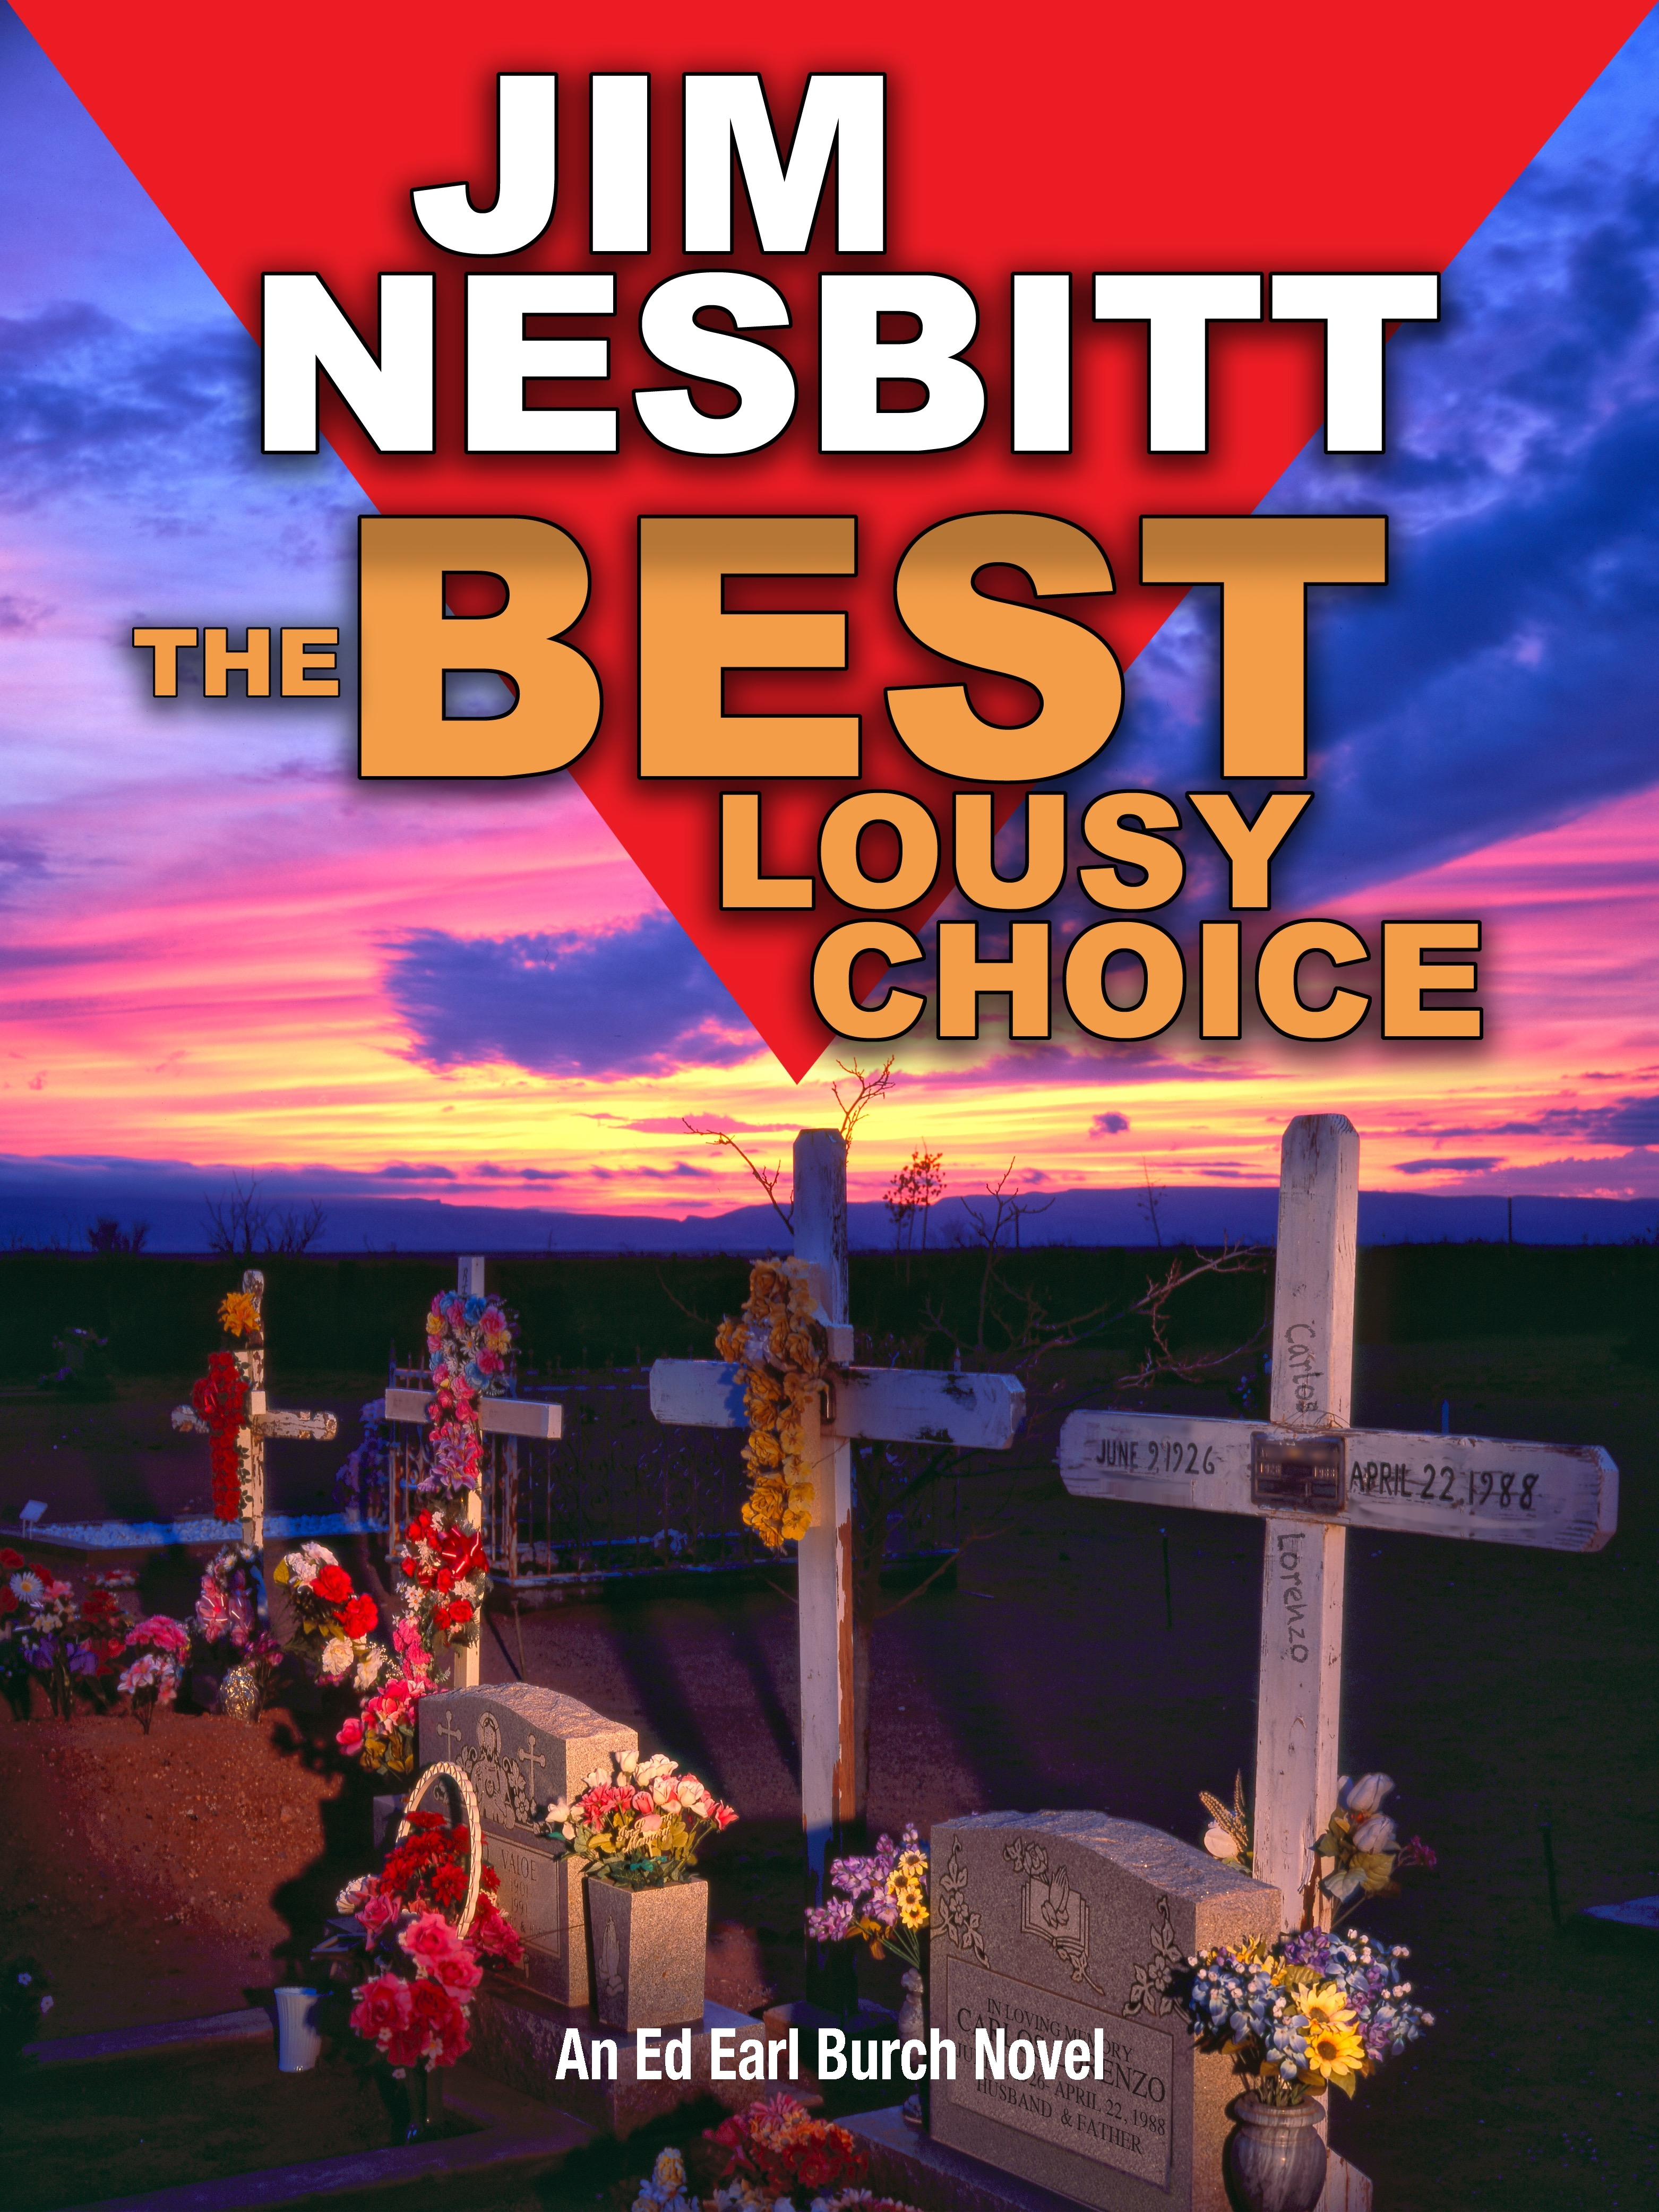 The Best Lousy Choice by Jim Nesbitt